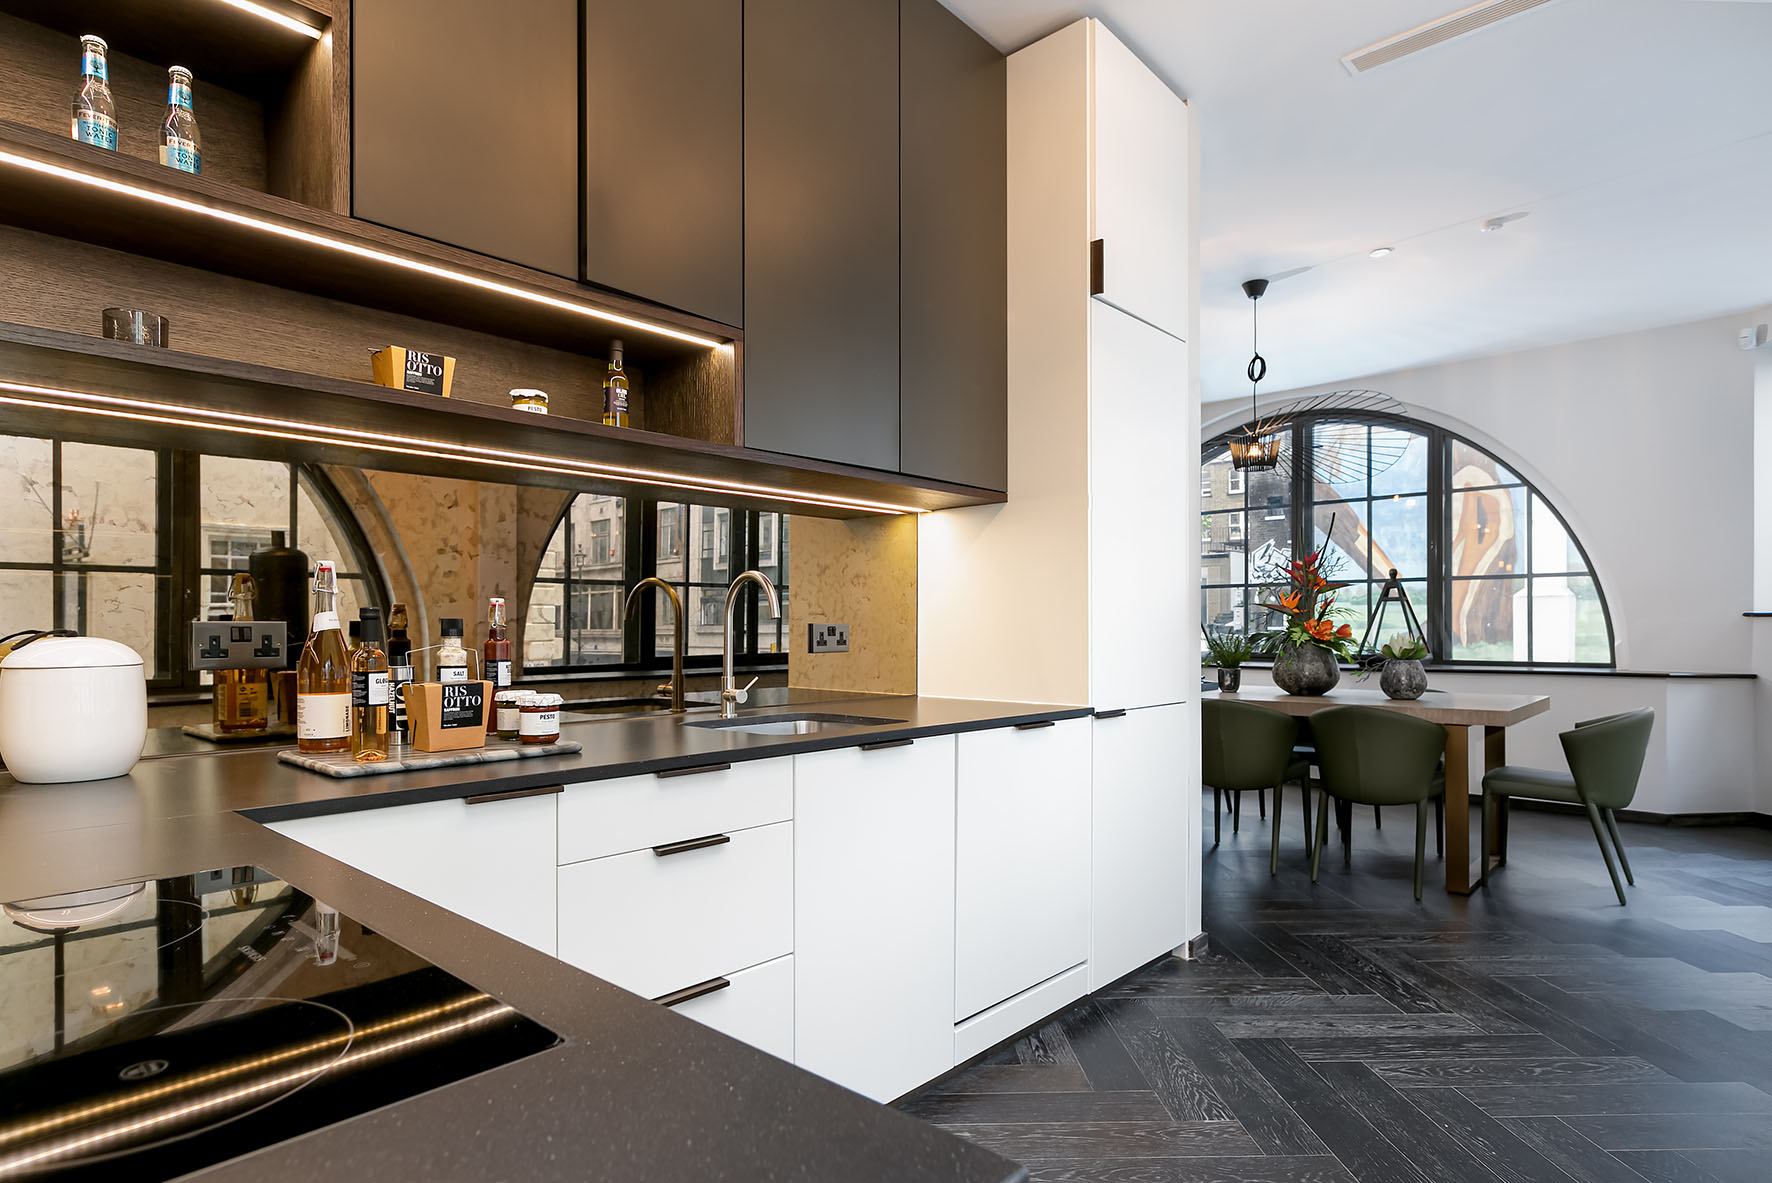 Lovelydays luxury service apartment rental - London - Soho - Berwick Street I - Lovelysuite - 3 bedrooms - 3 bathrooms - Luxury kitchen - 13620ad1a4e1 - Lovelydays